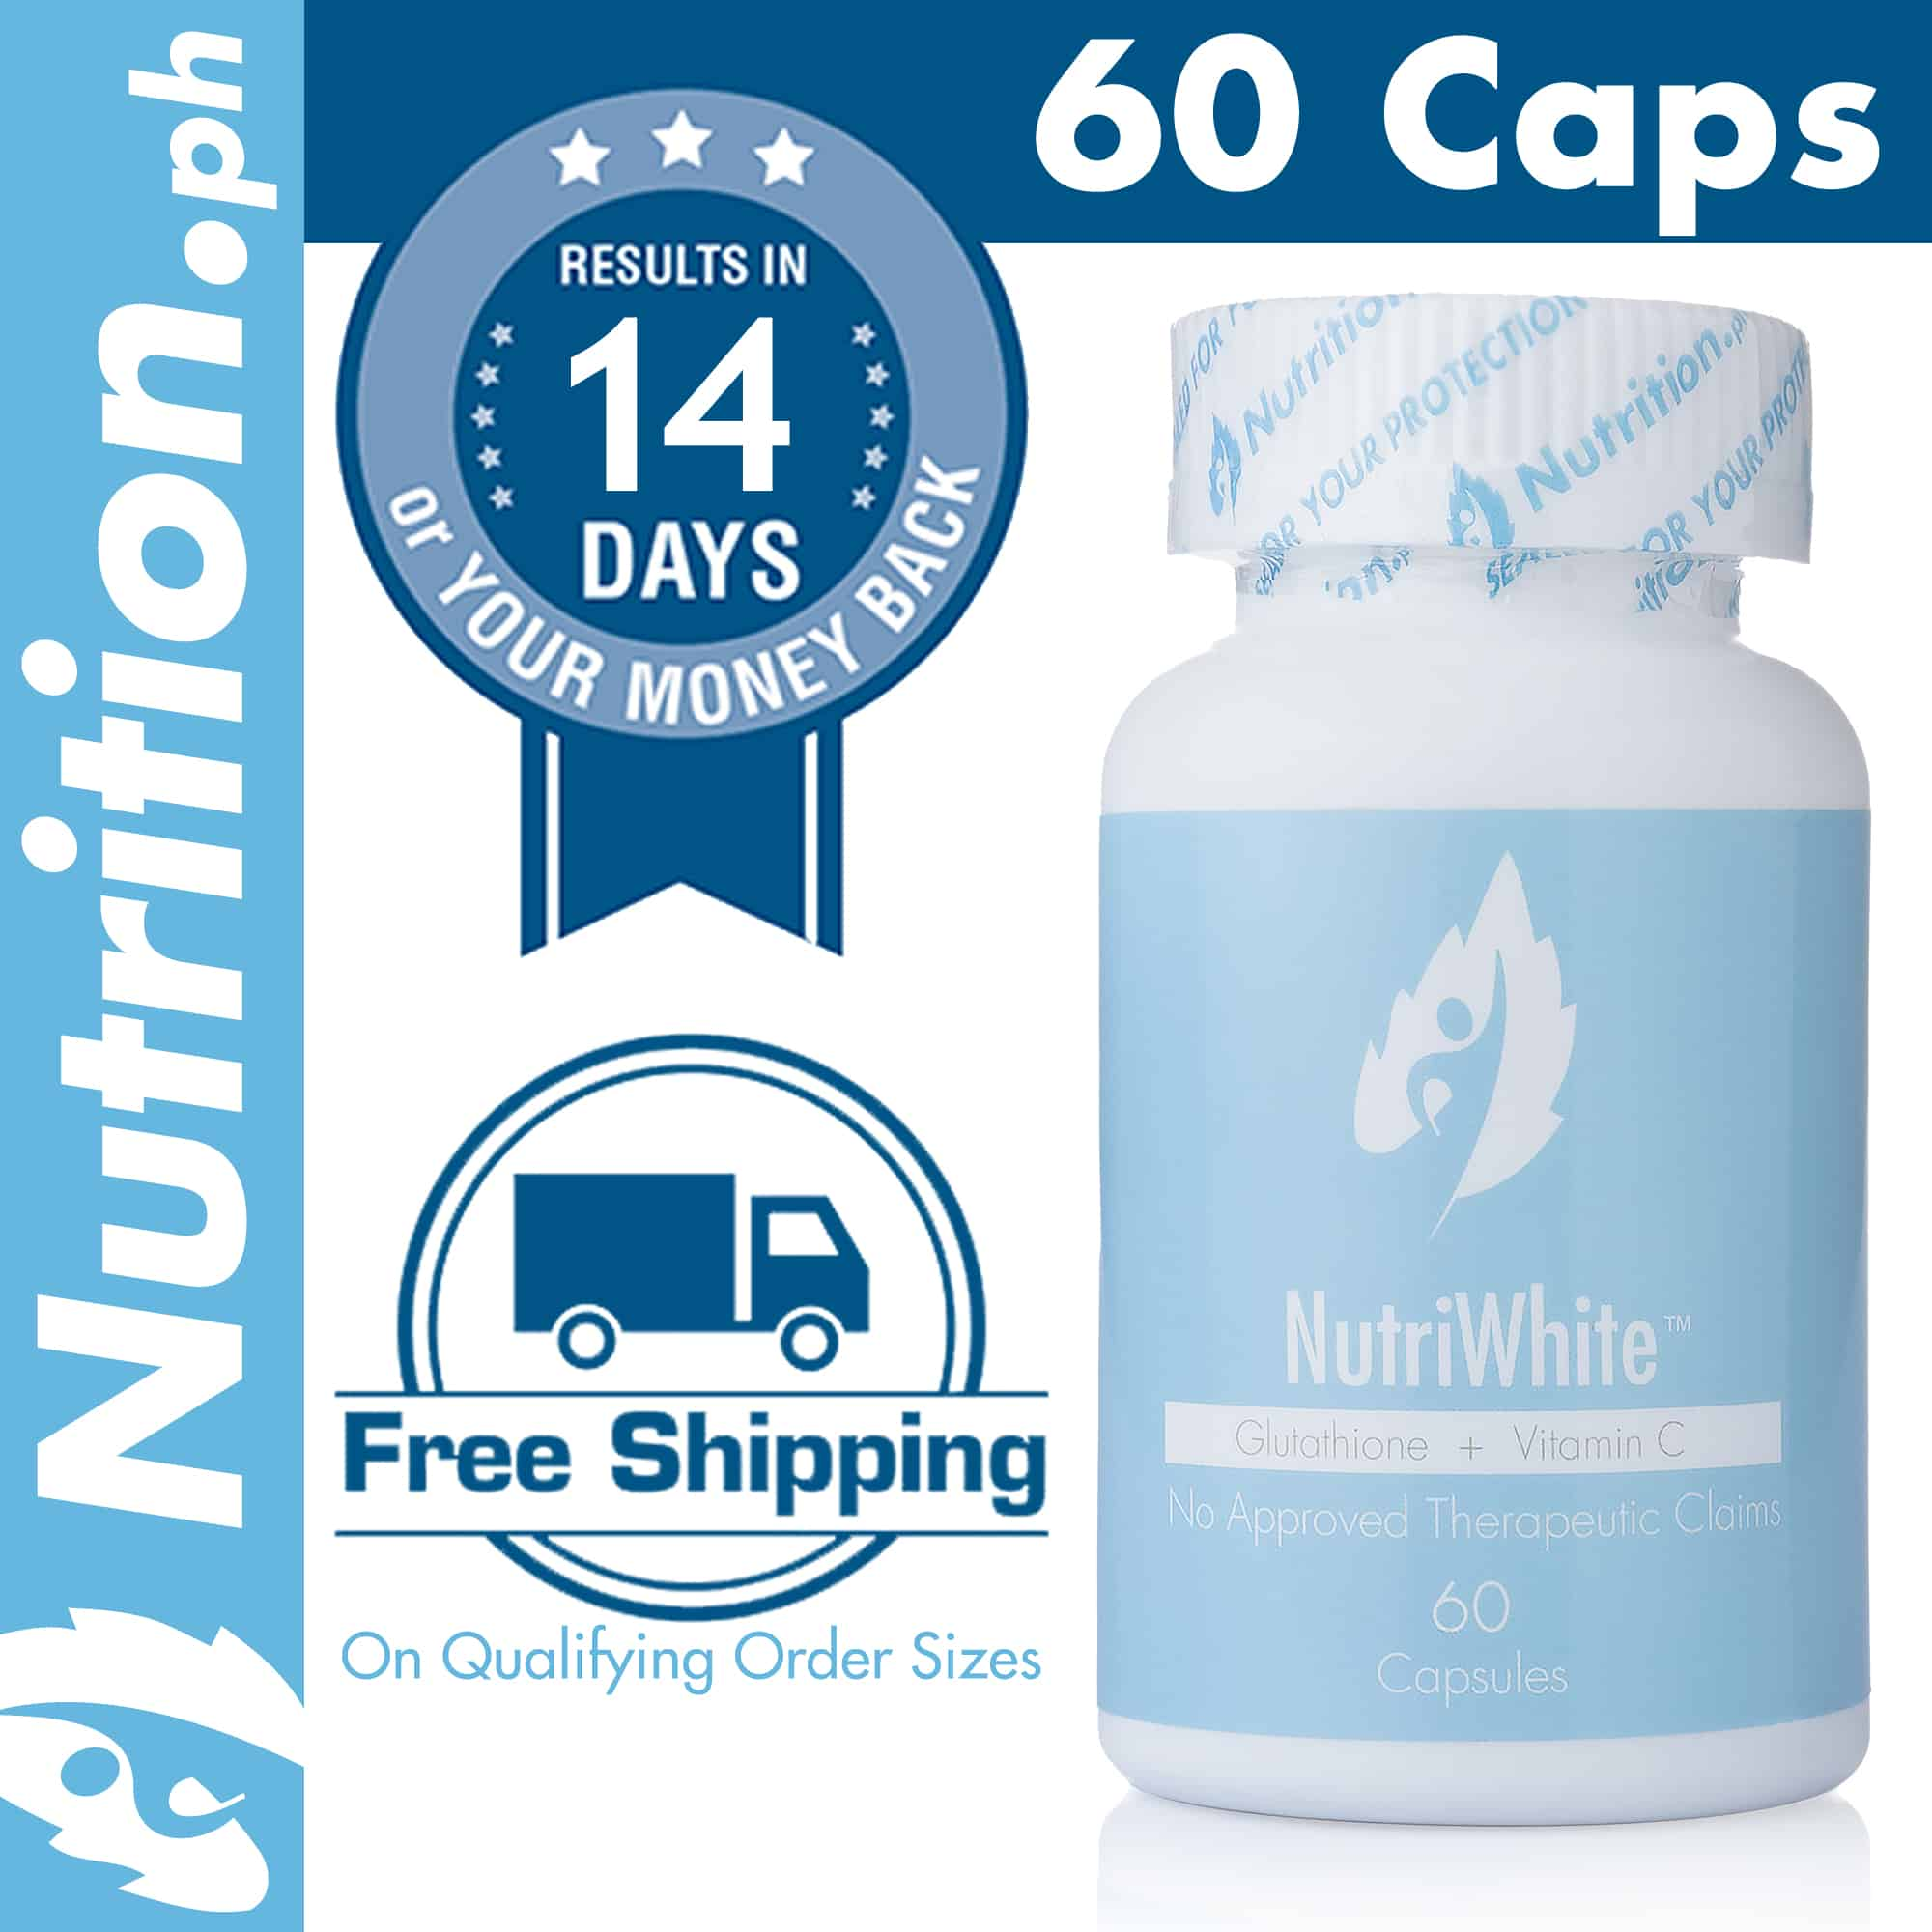 Glutathione_Capsules_60_count_bottle